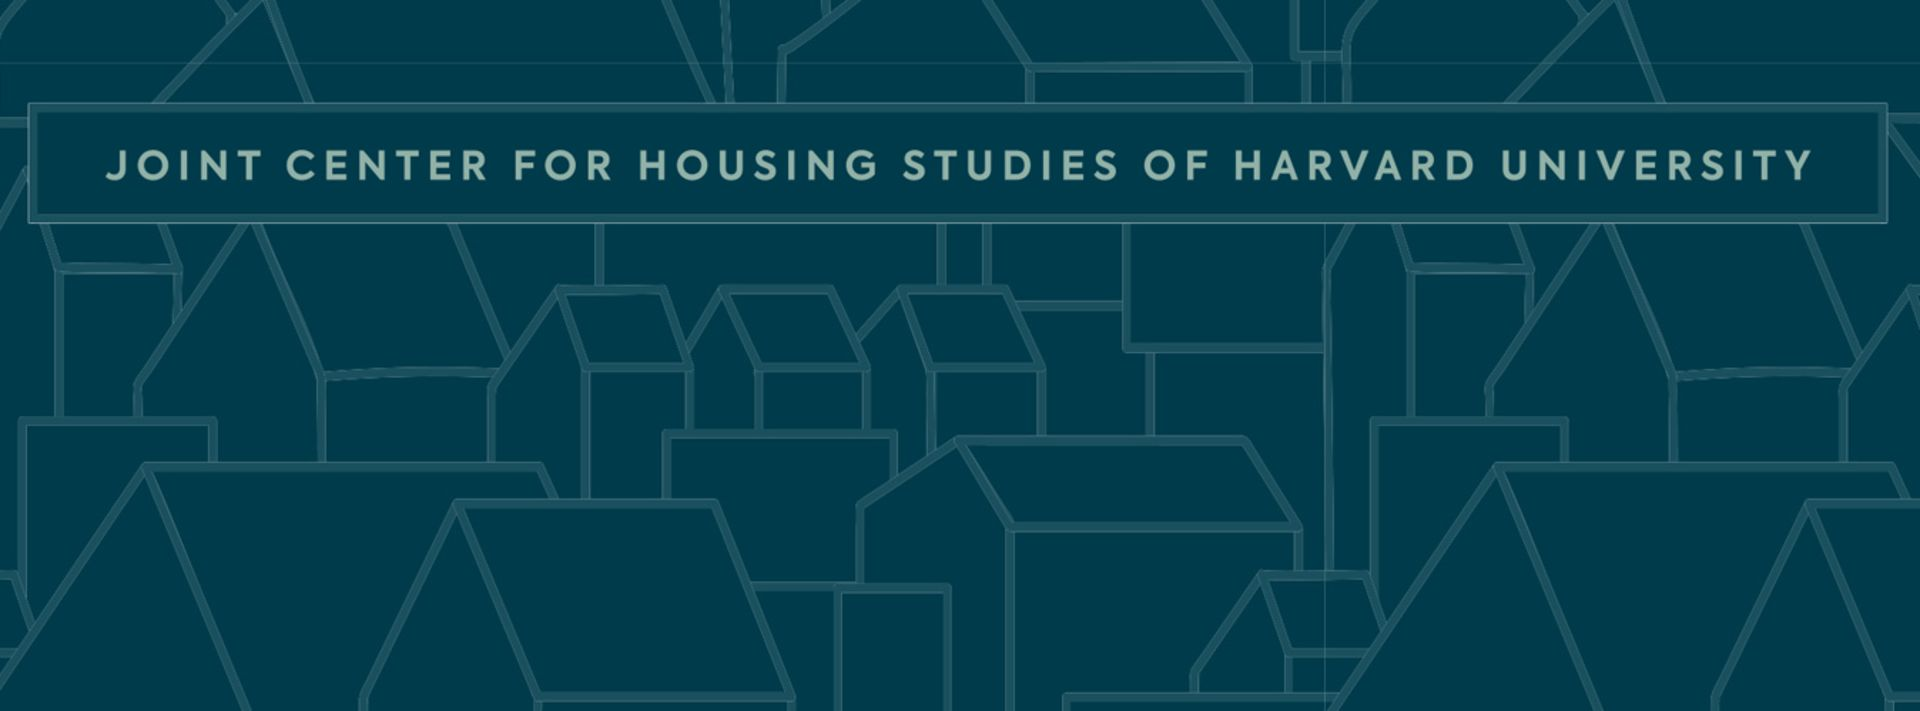 The State Of The Nation's Housing 2019